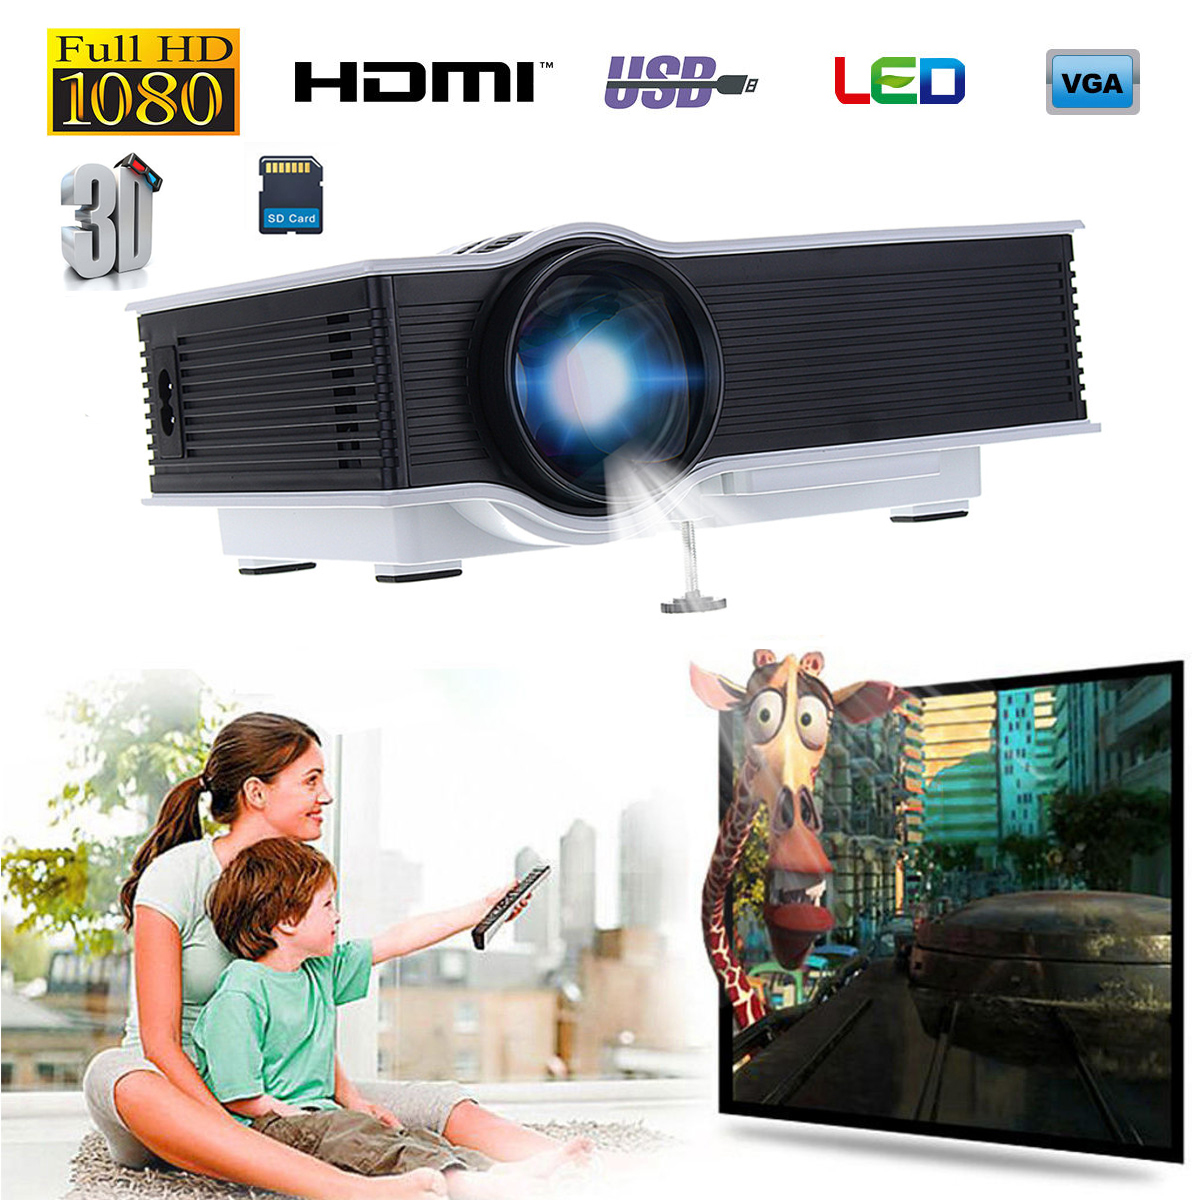 For GIGXON G40 1200 LM 1080P Led Projector Full HD Compatible Home Portable Mini Projector HDMI телескопы бинокли gigxon 10 x 25 pc